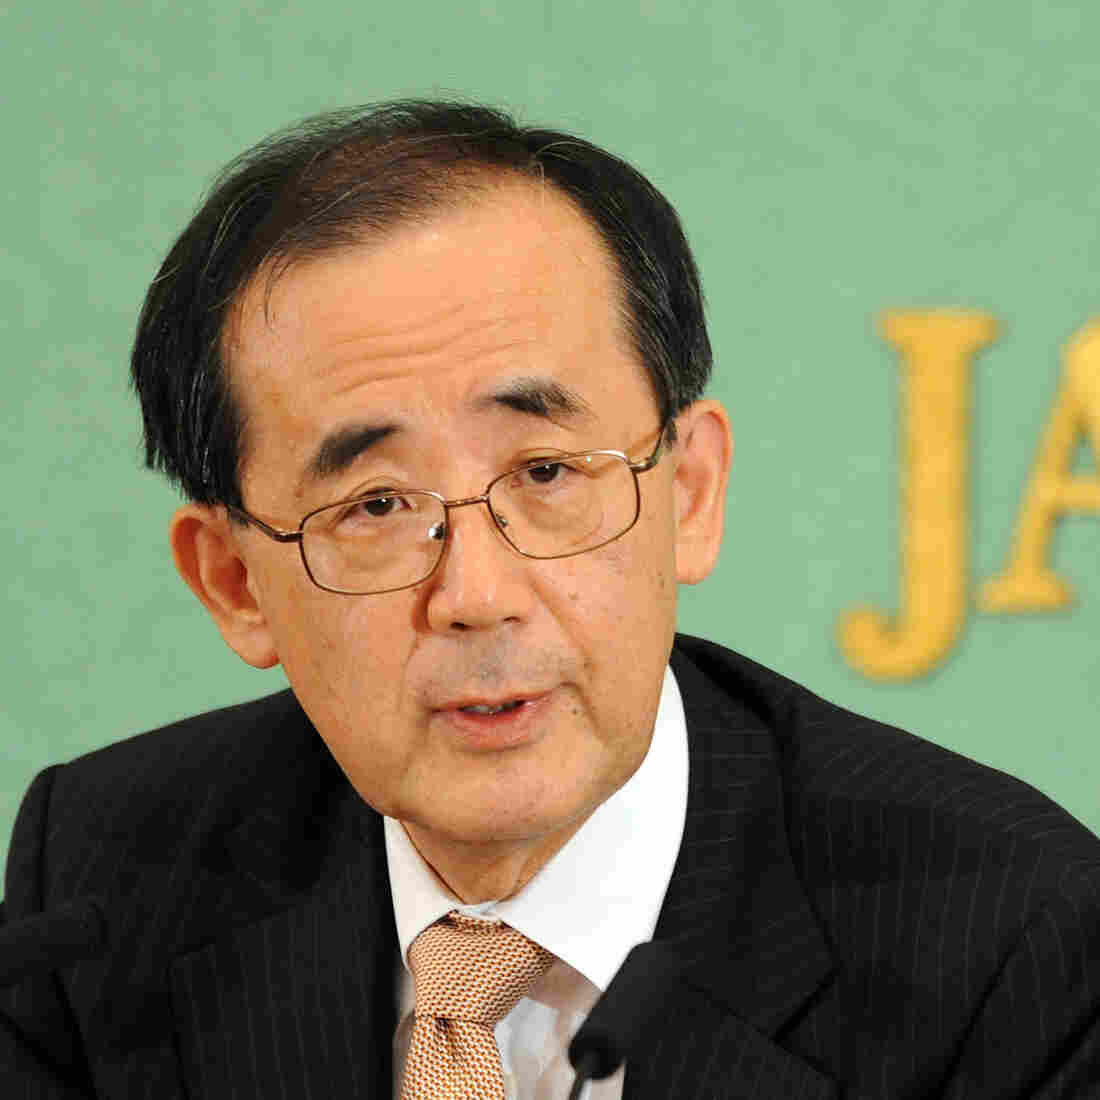 Masaaki Shirakawa, the governor of the Bank of Japan, speaks before the press in Tokyo on Friday. The central bank announced new measures to stimulate the economy Tuesday.